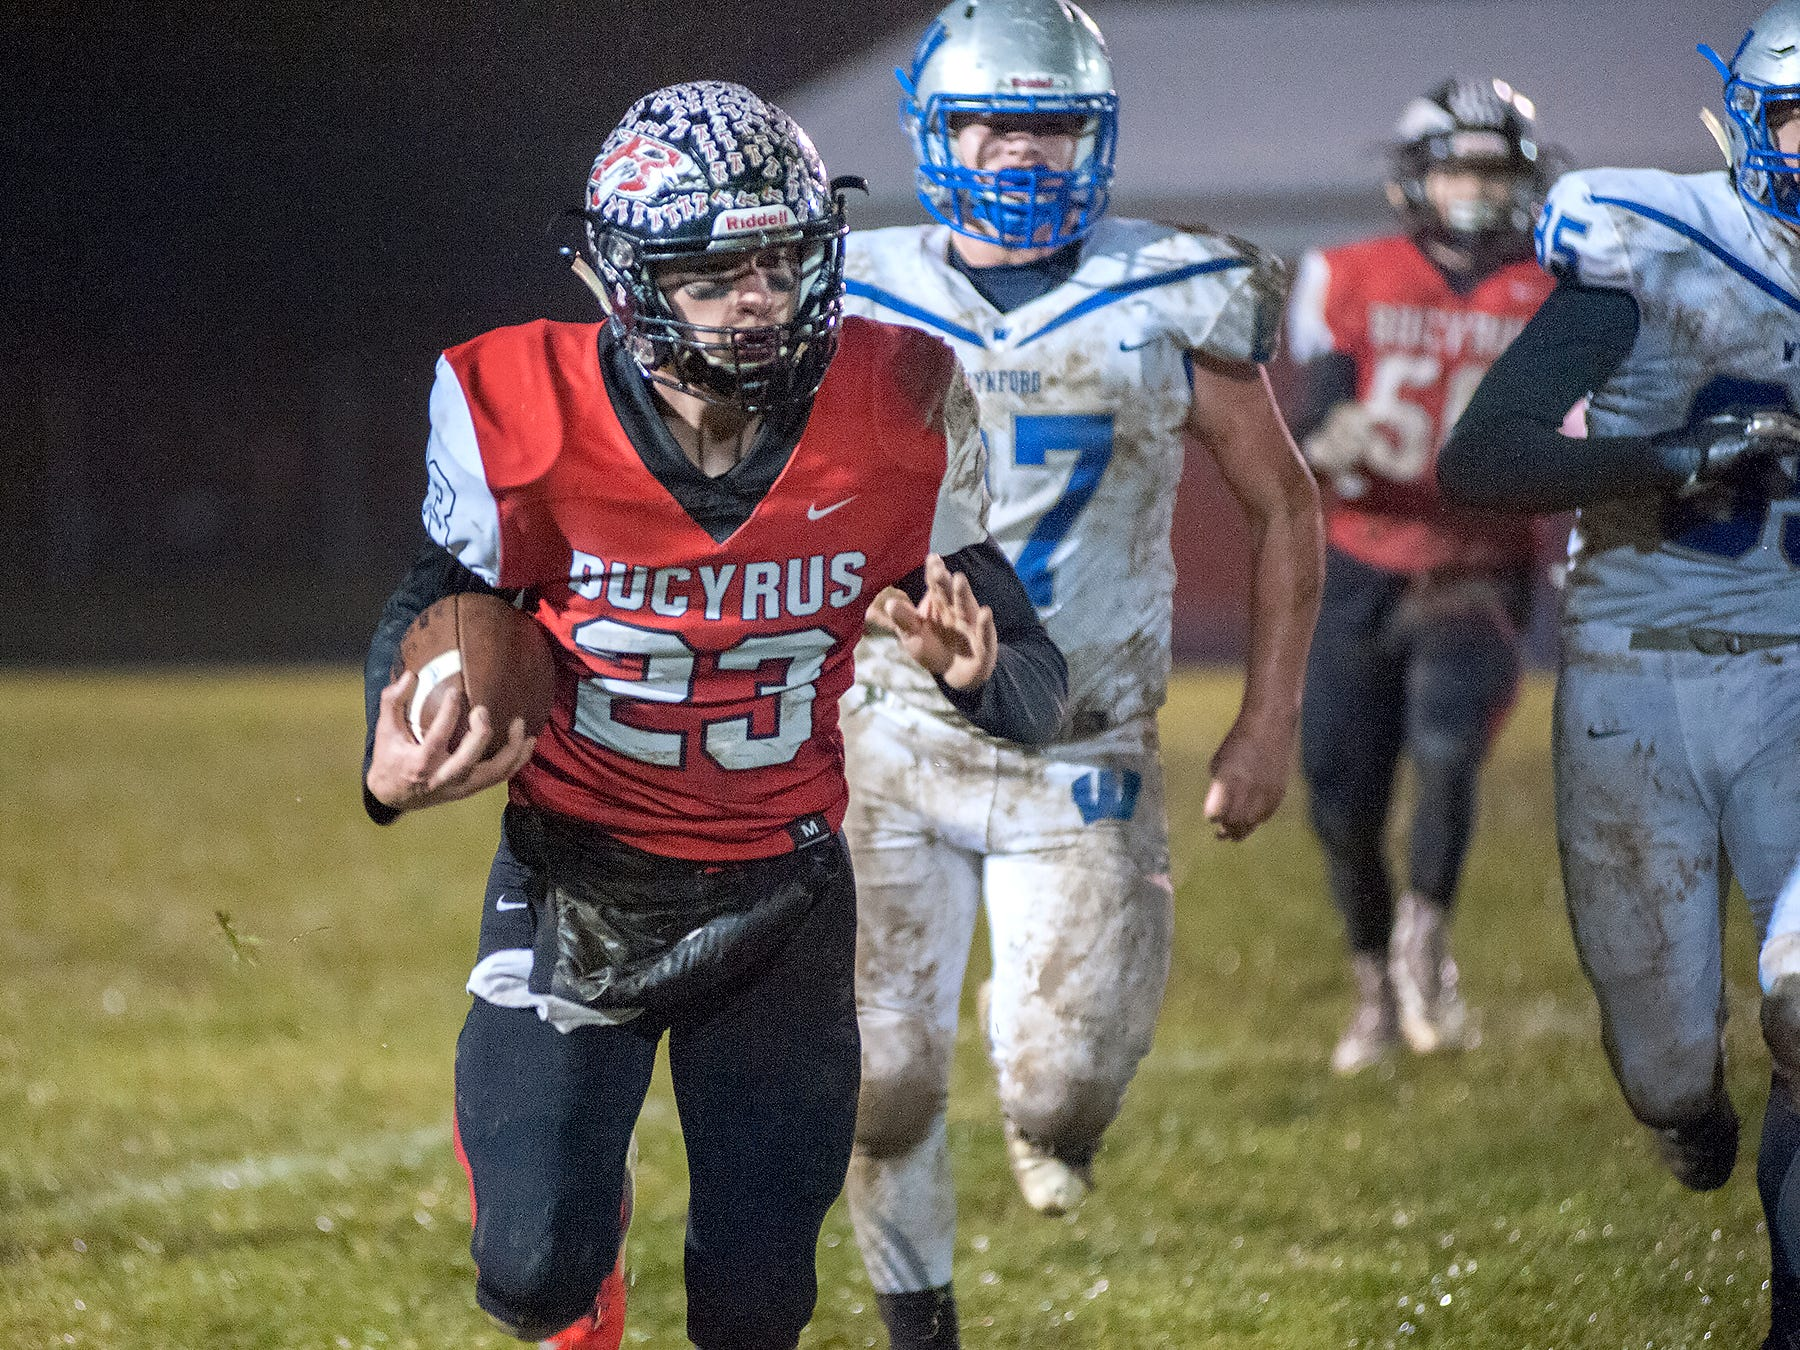 Bucyrus' Harley Robinson runs the ball.